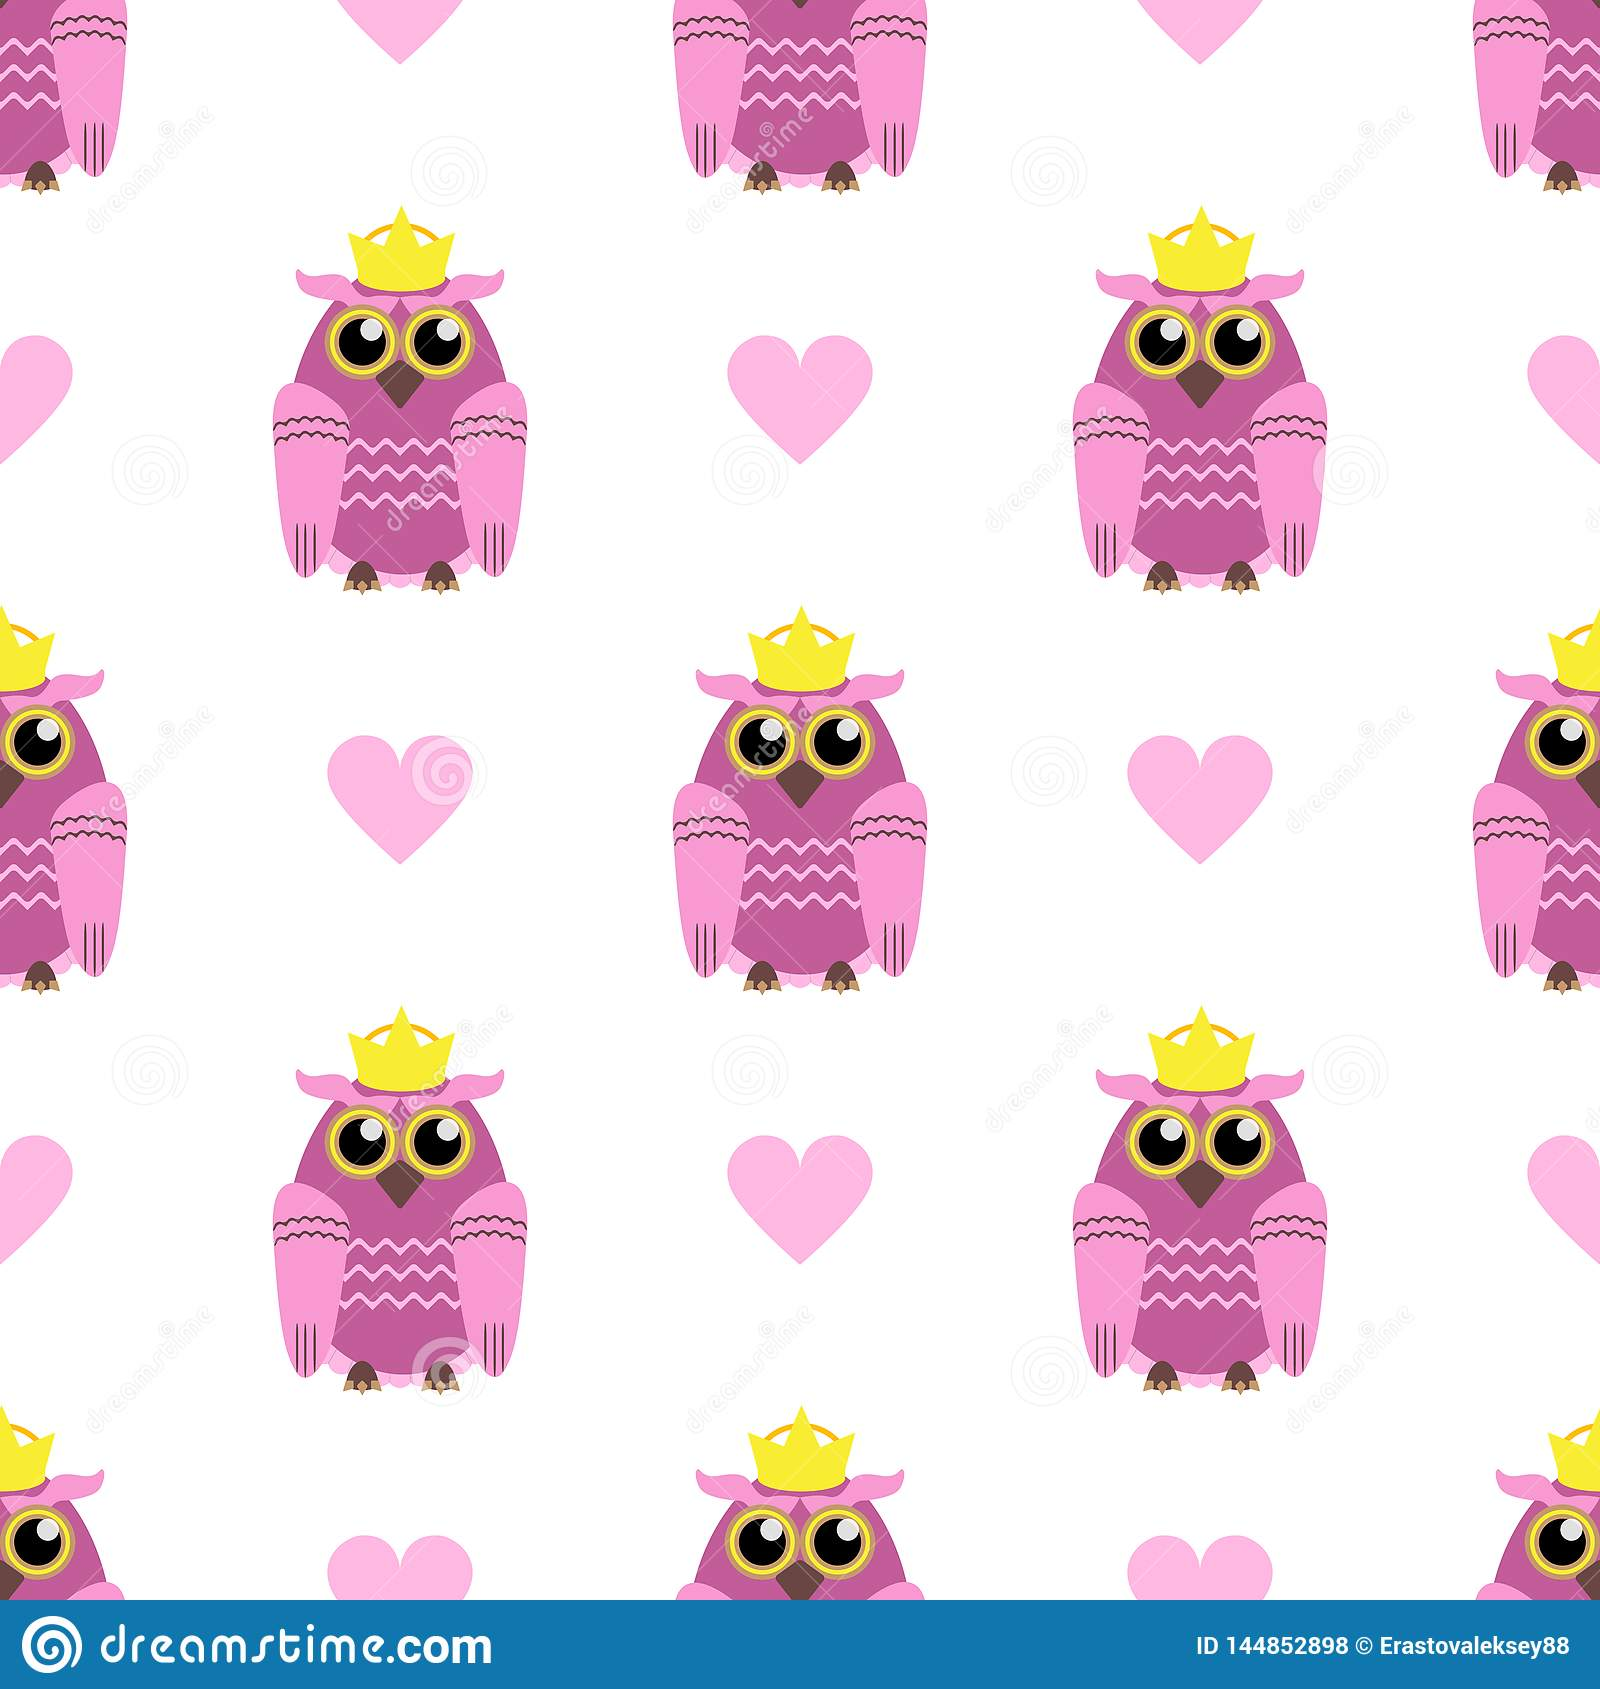 Cute seamless pattern with hearts and owls with crowns. Vector illustration.